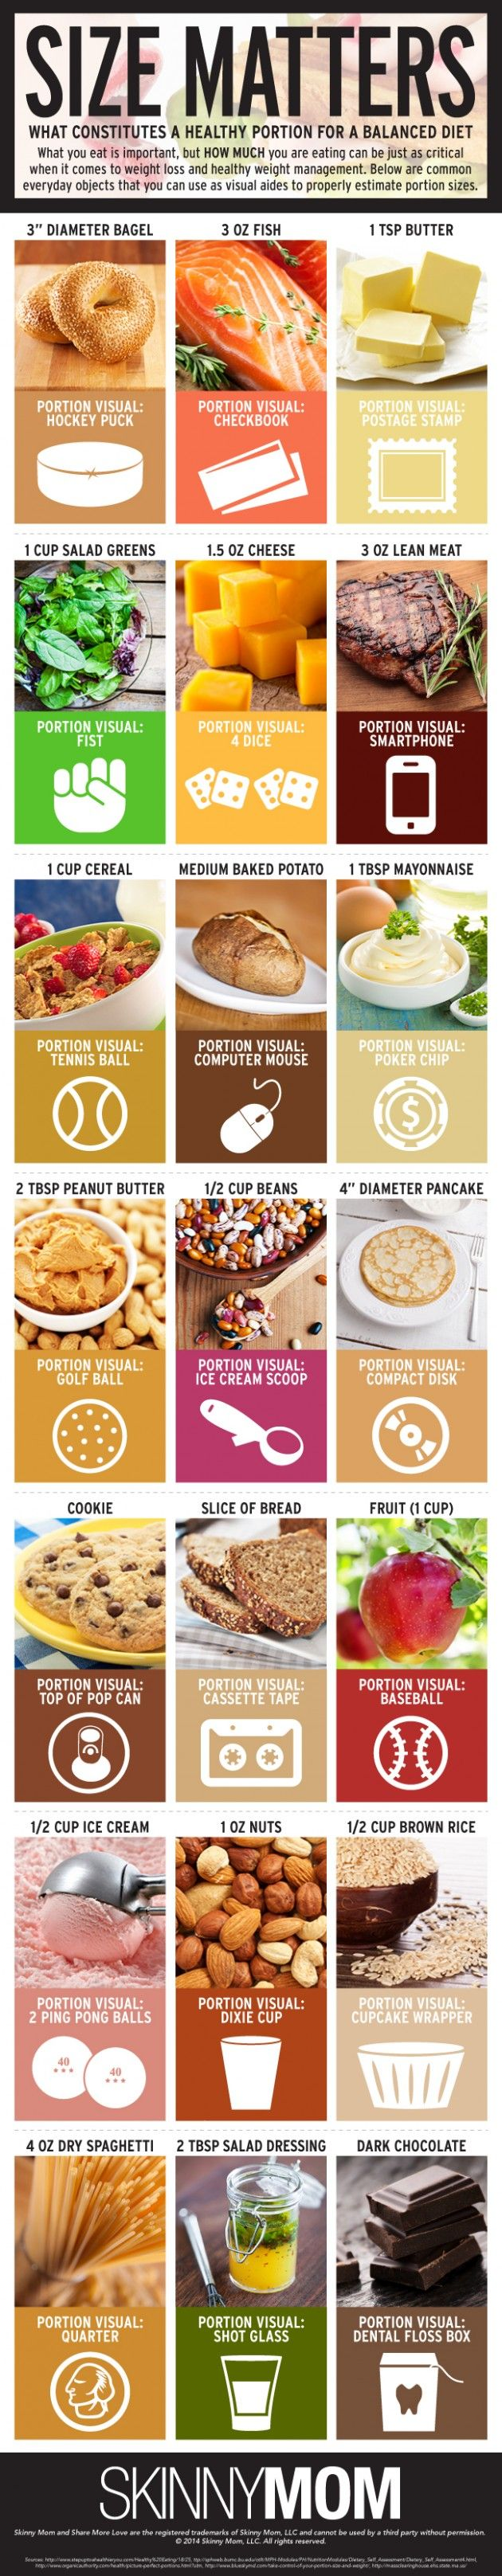 The ultimate visual guide to portion control